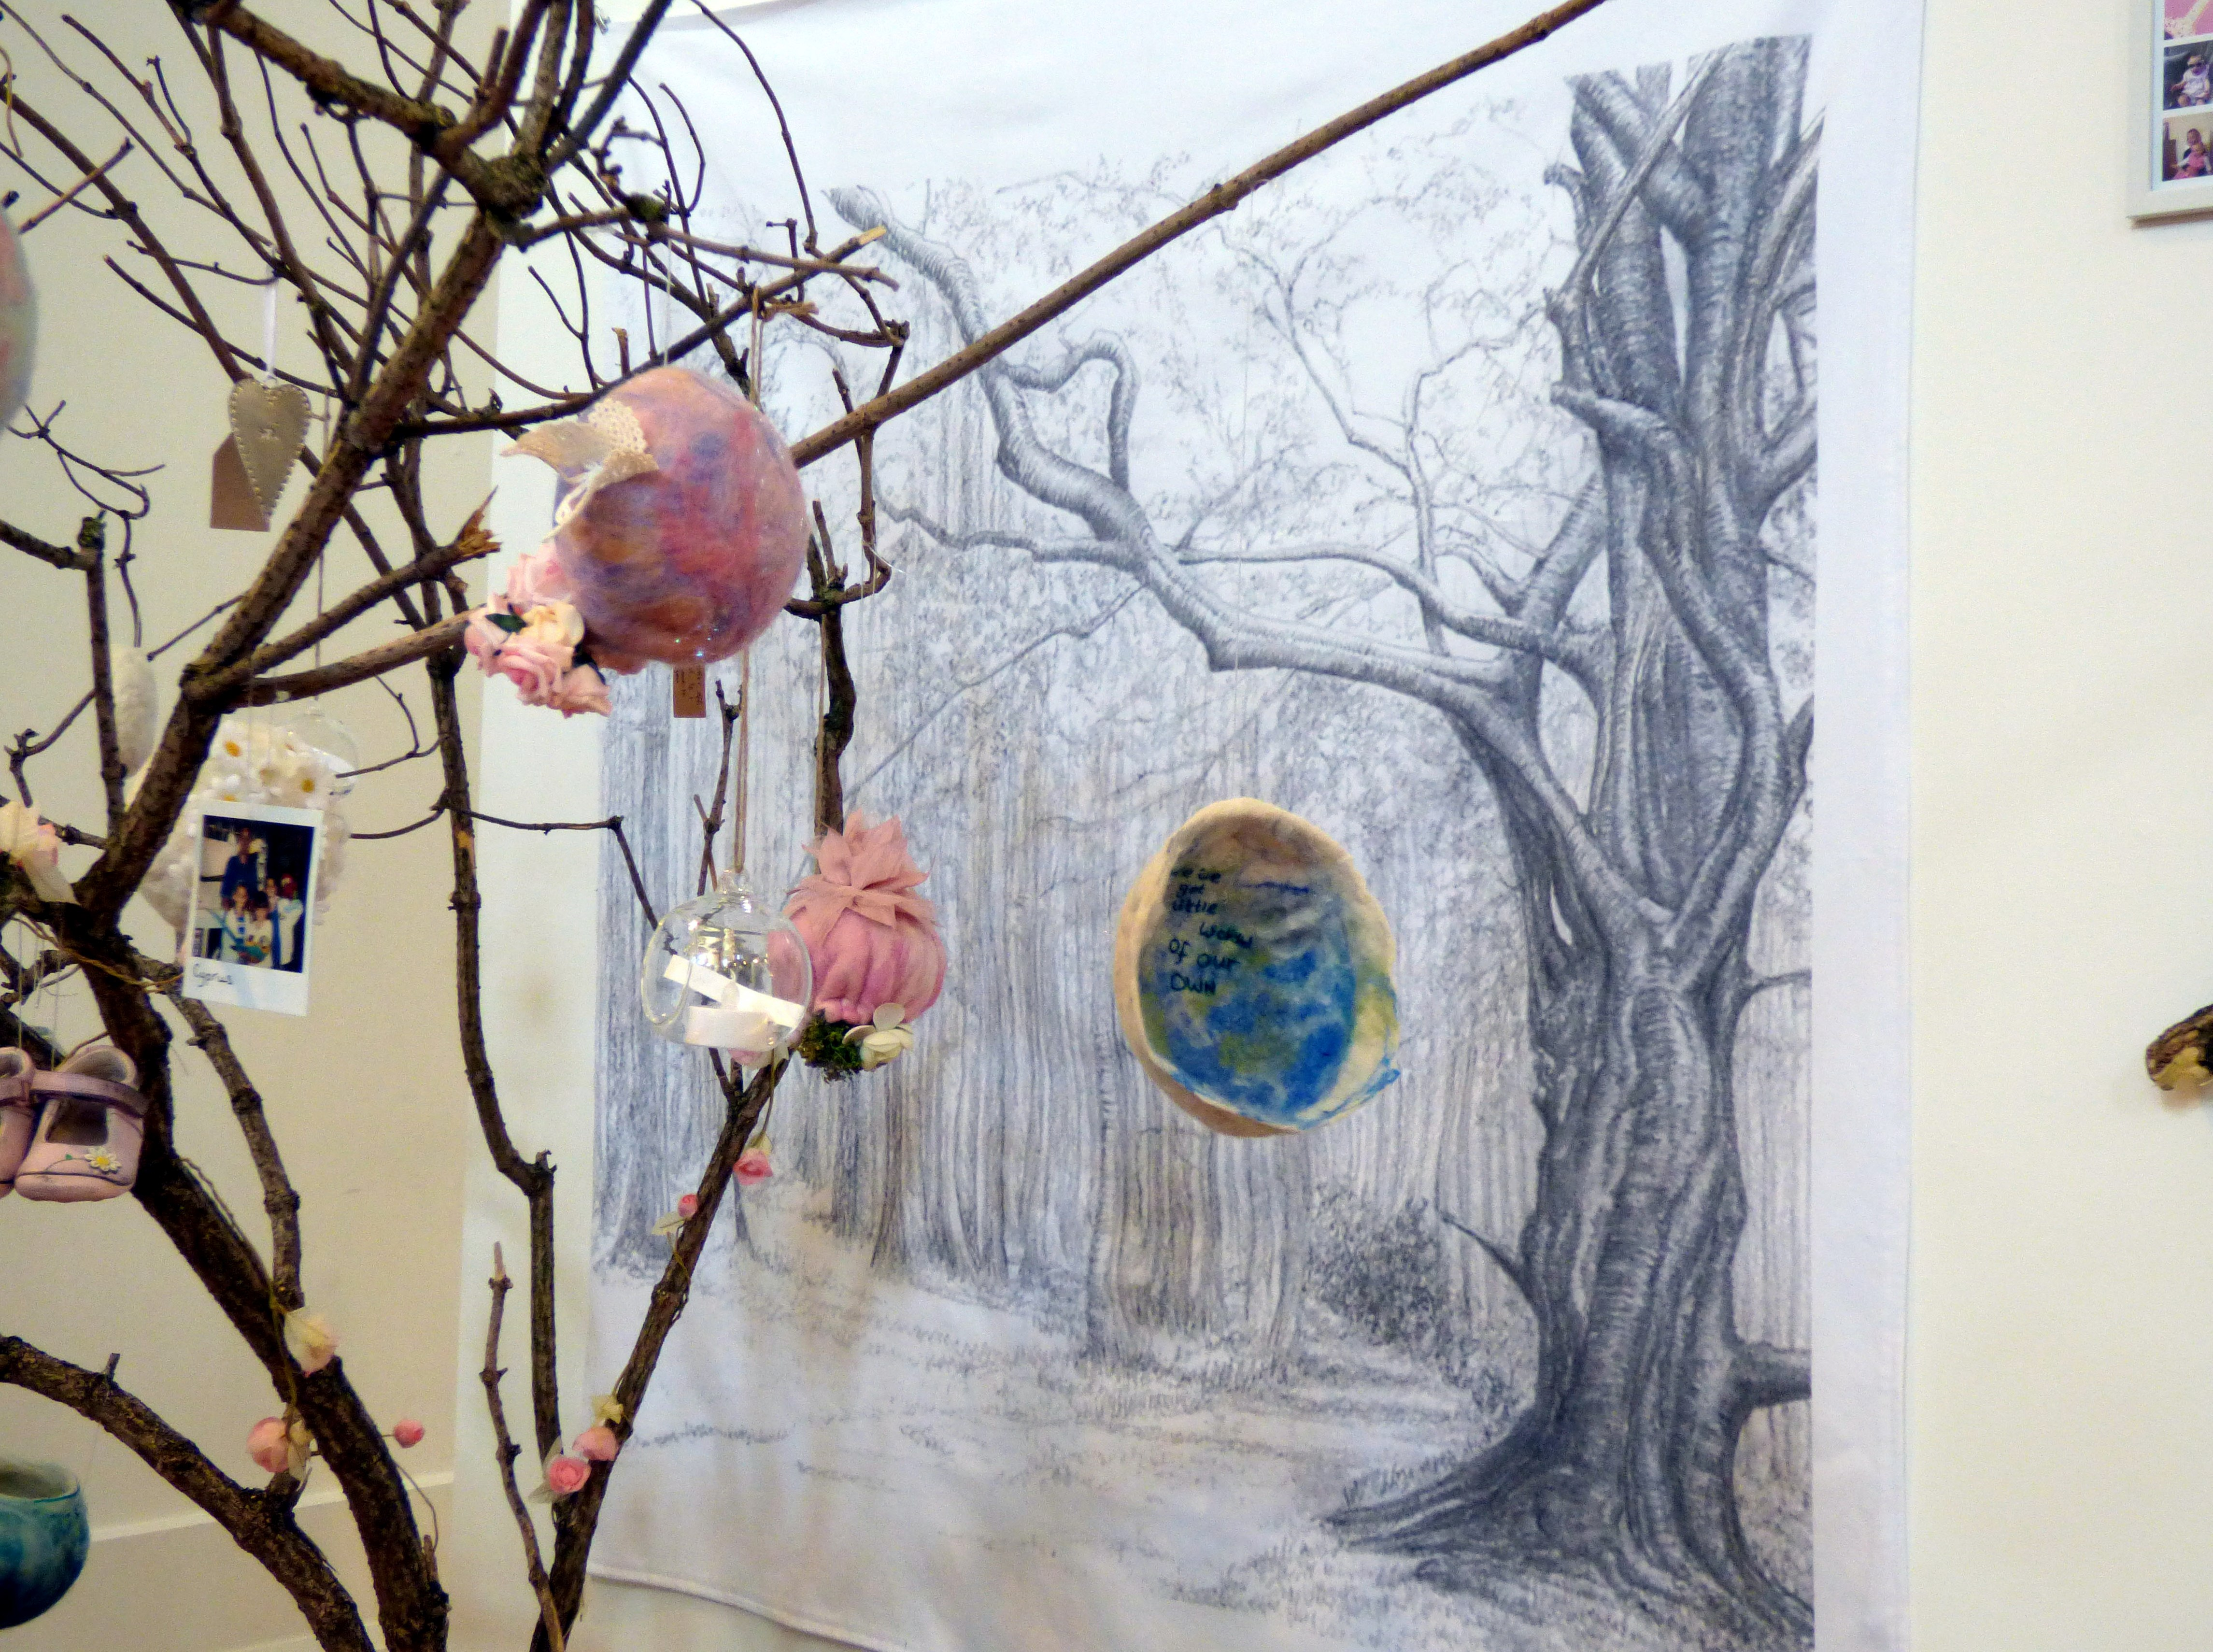 textiles based on memories by Laura Winrow at Hope Univ Degree Show 2017